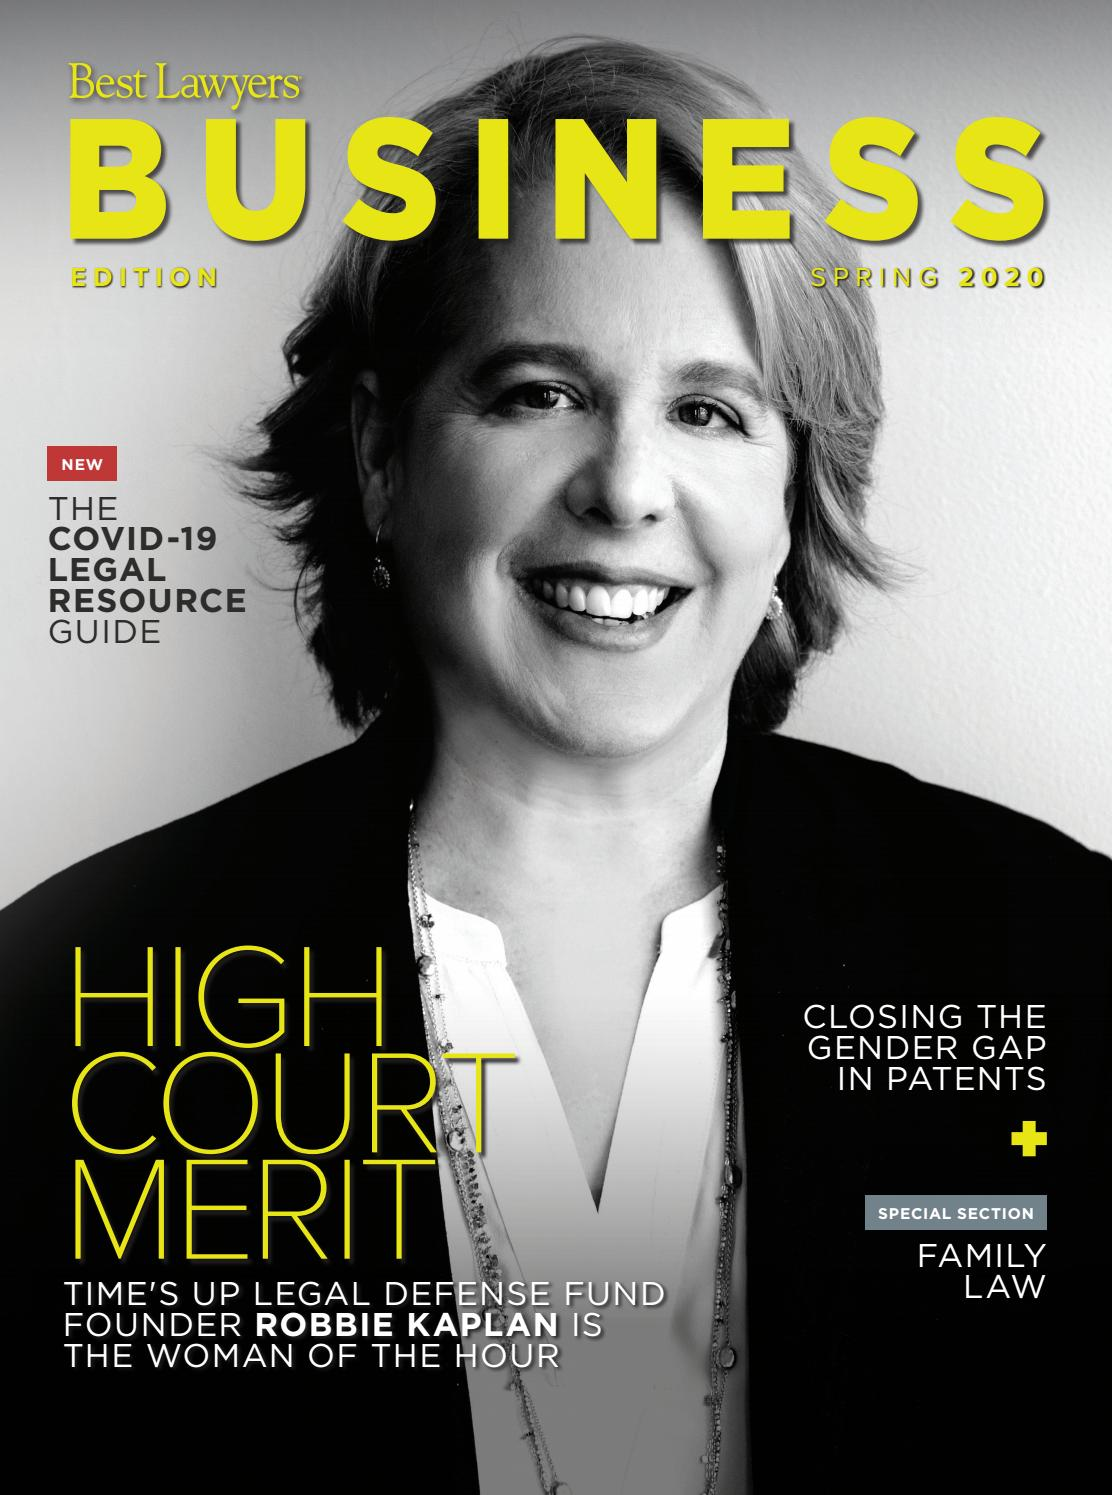 best lawyers spring business edition 2020 by best lawyers issuu business edition 2020 by best lawyers